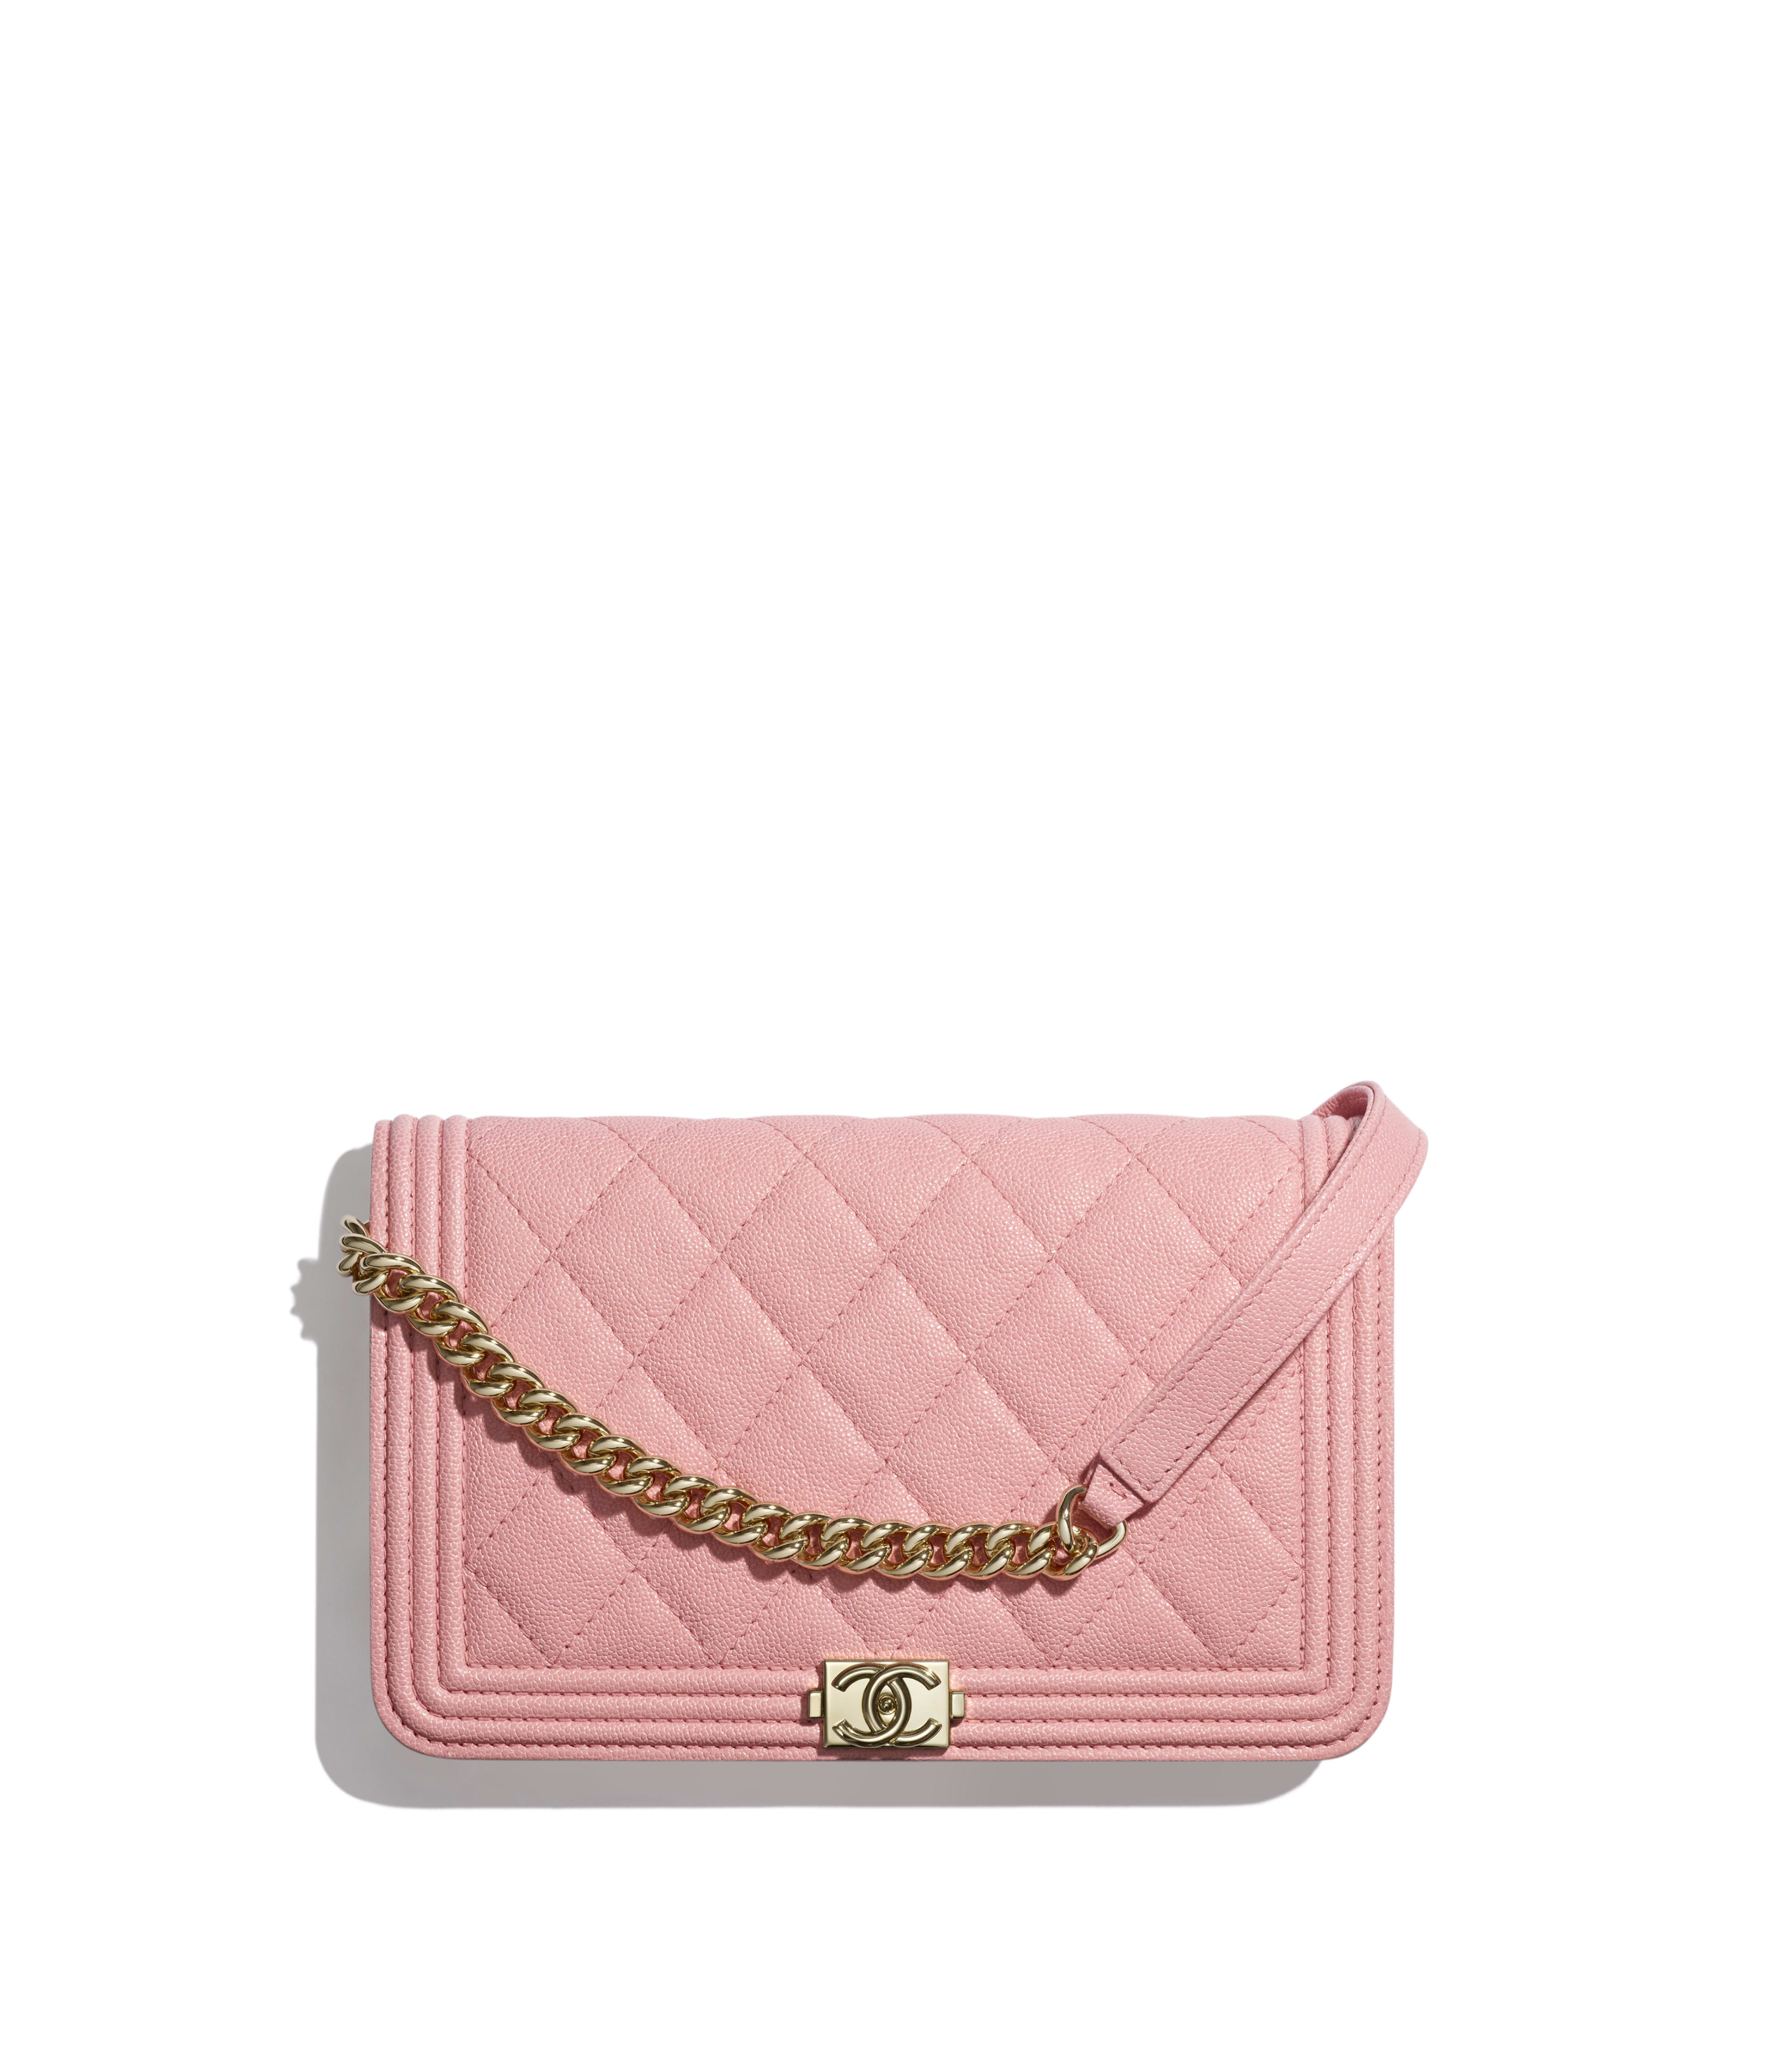 30ade9ad8e967d BOY CHANEL Wallet on Chain Grained Calfskin & Gold-Tone Metal, Pink Ref.  A81969B00317N0897